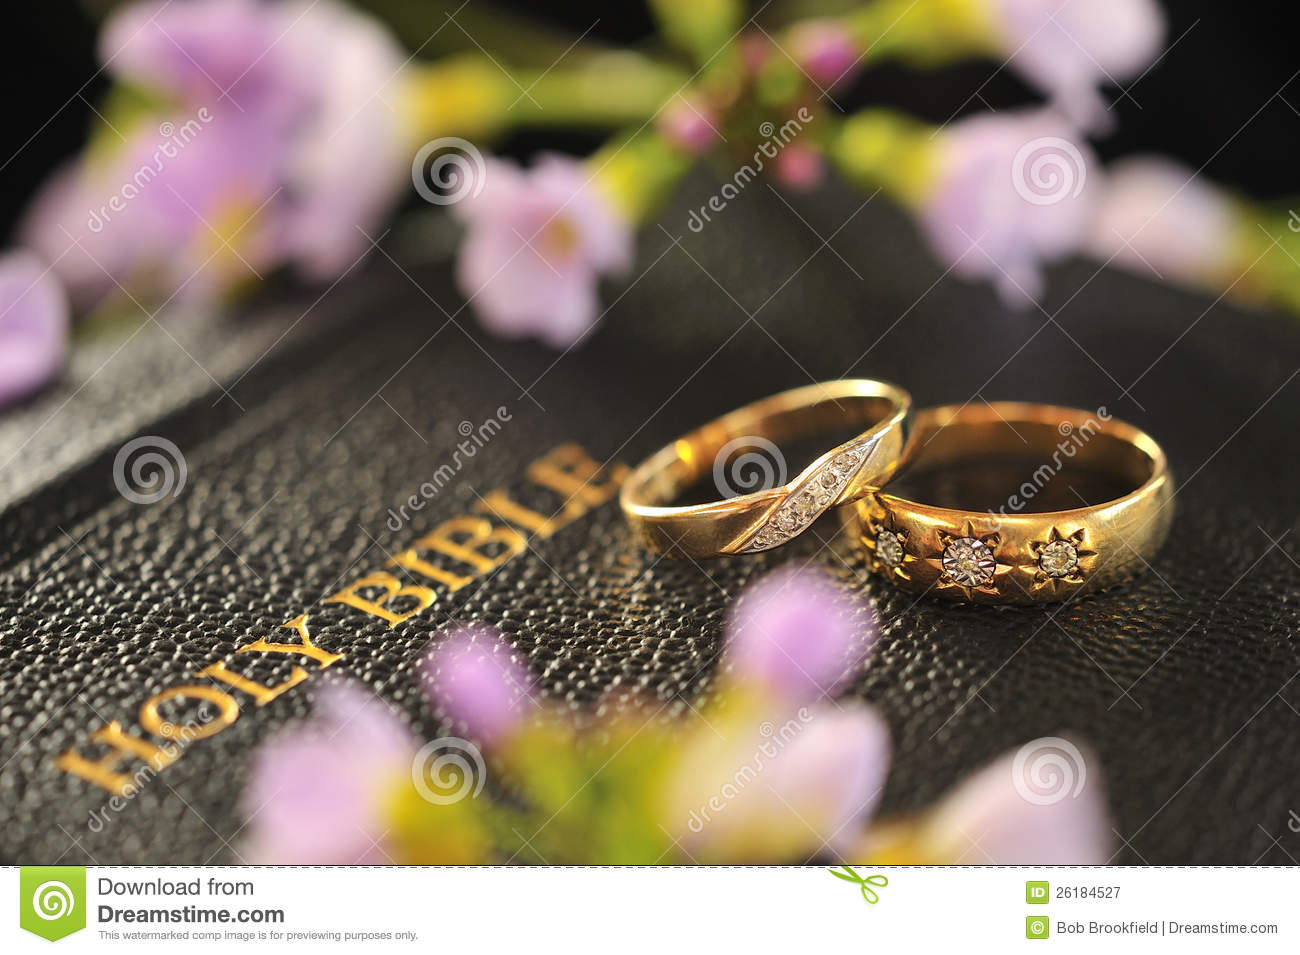 shadow open dwgwcy photo ring an a rings on stock scripture bible shaped casting heart wedding